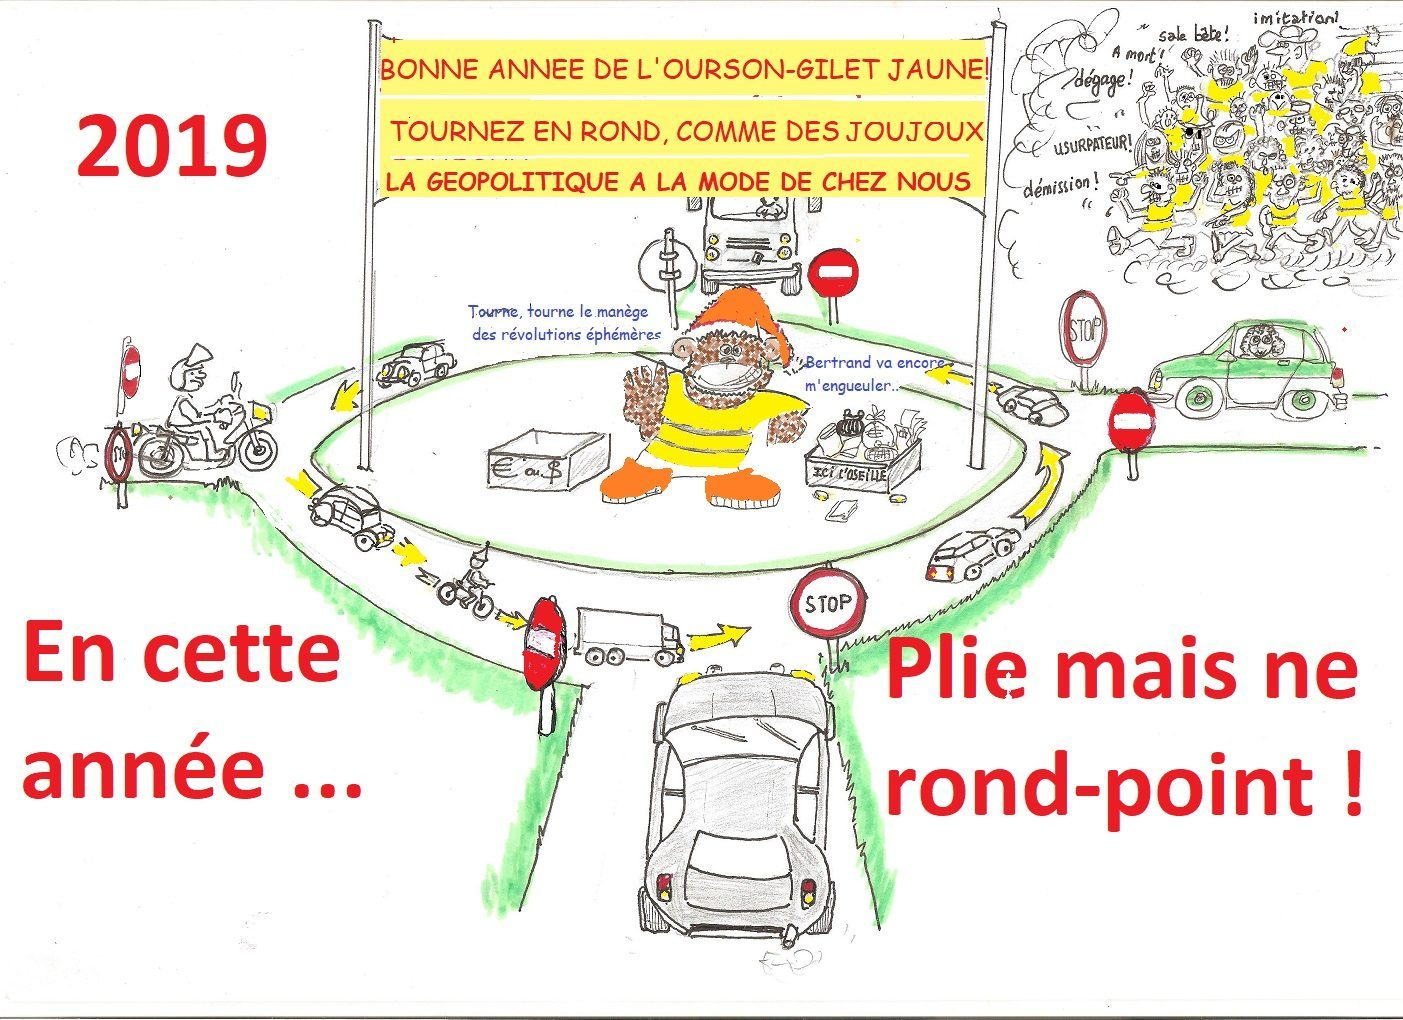 2019, Plis mais ne rond-point !